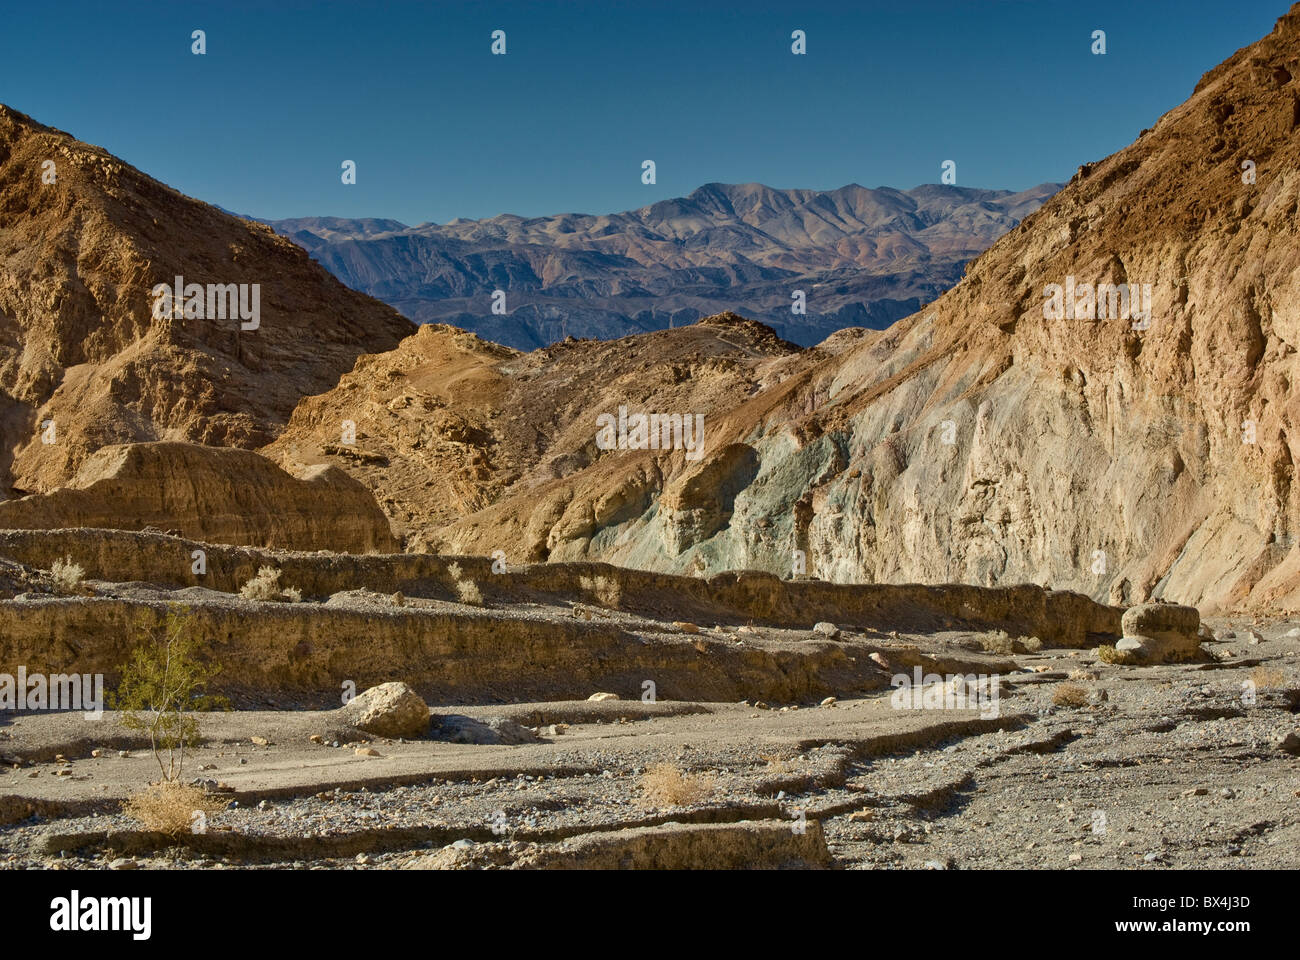 Mosaik Canyon, cottonwood Berge in der Ferne, Death Valley, Kalifornien, USA Stockbild